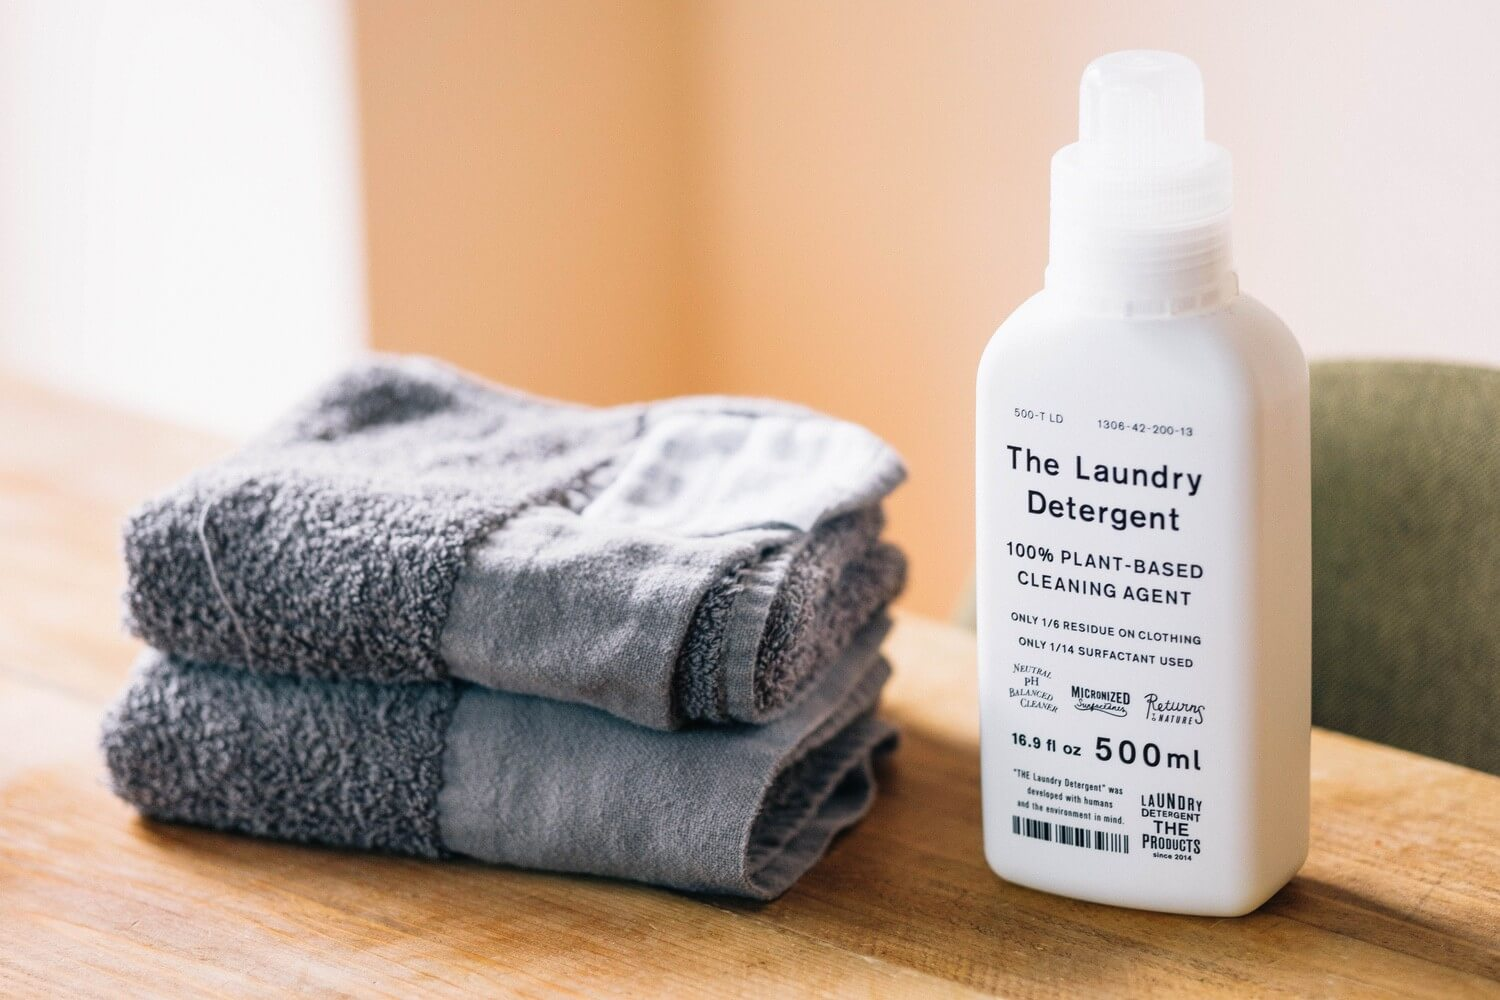 The Laundry Detergent 0006